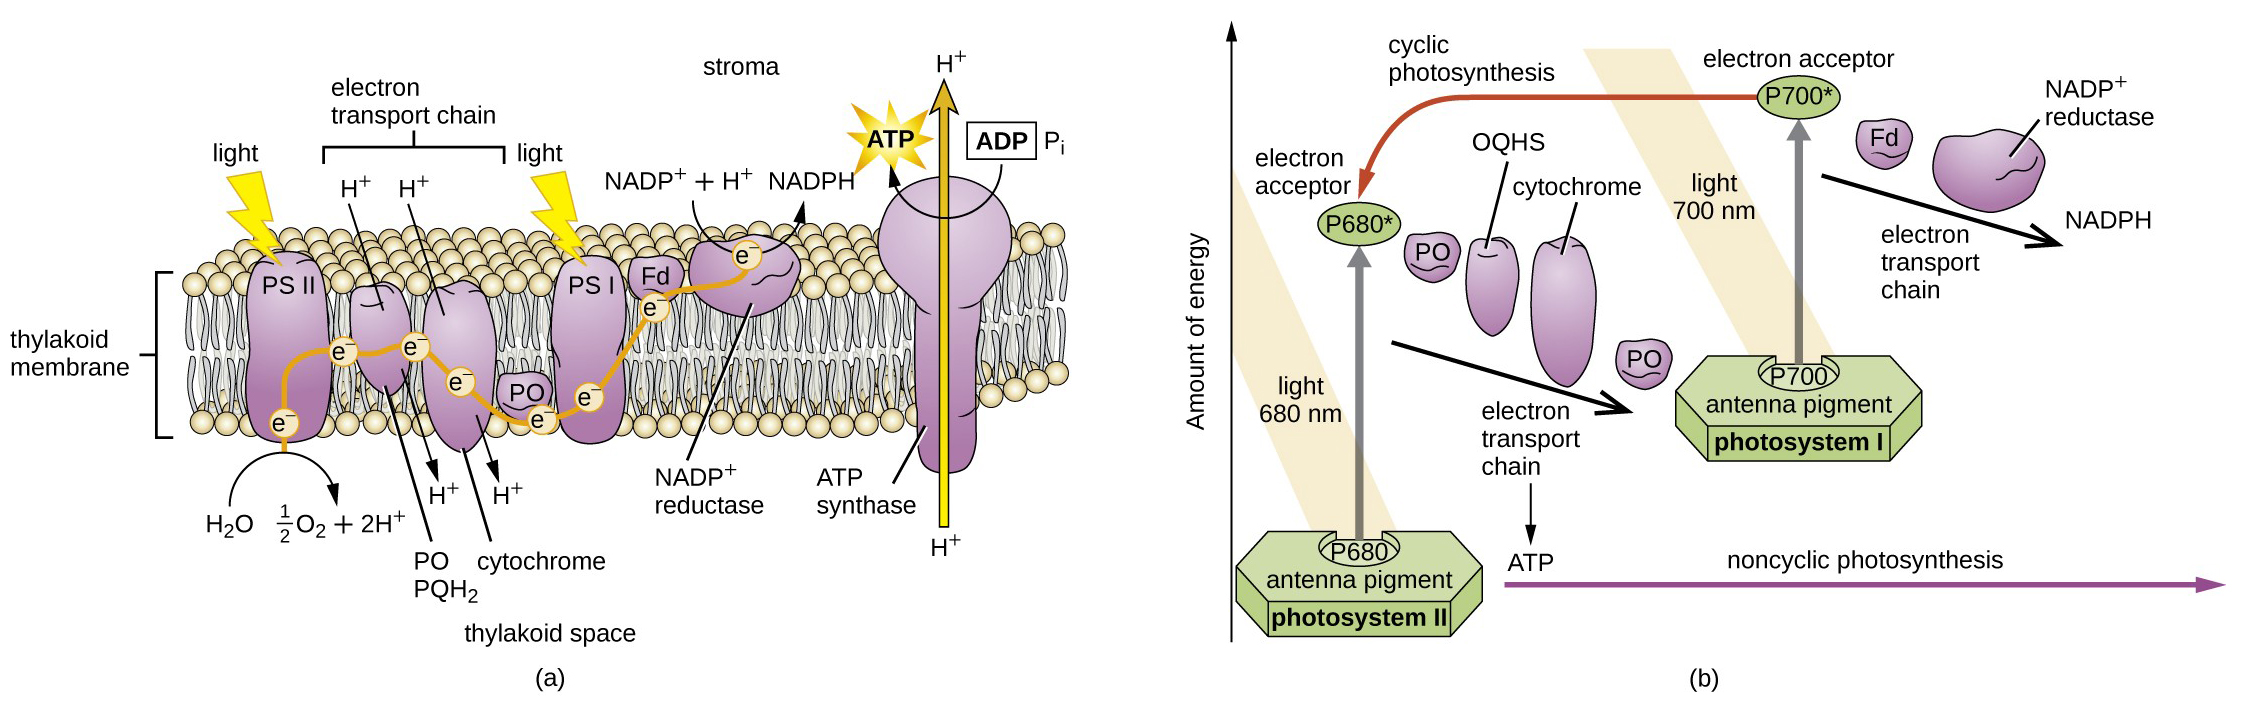 Photosynthesis microbiology a drawing of a thylakoid membrane with proteins light strikes ps ii which breaks pooptronica Choice Image